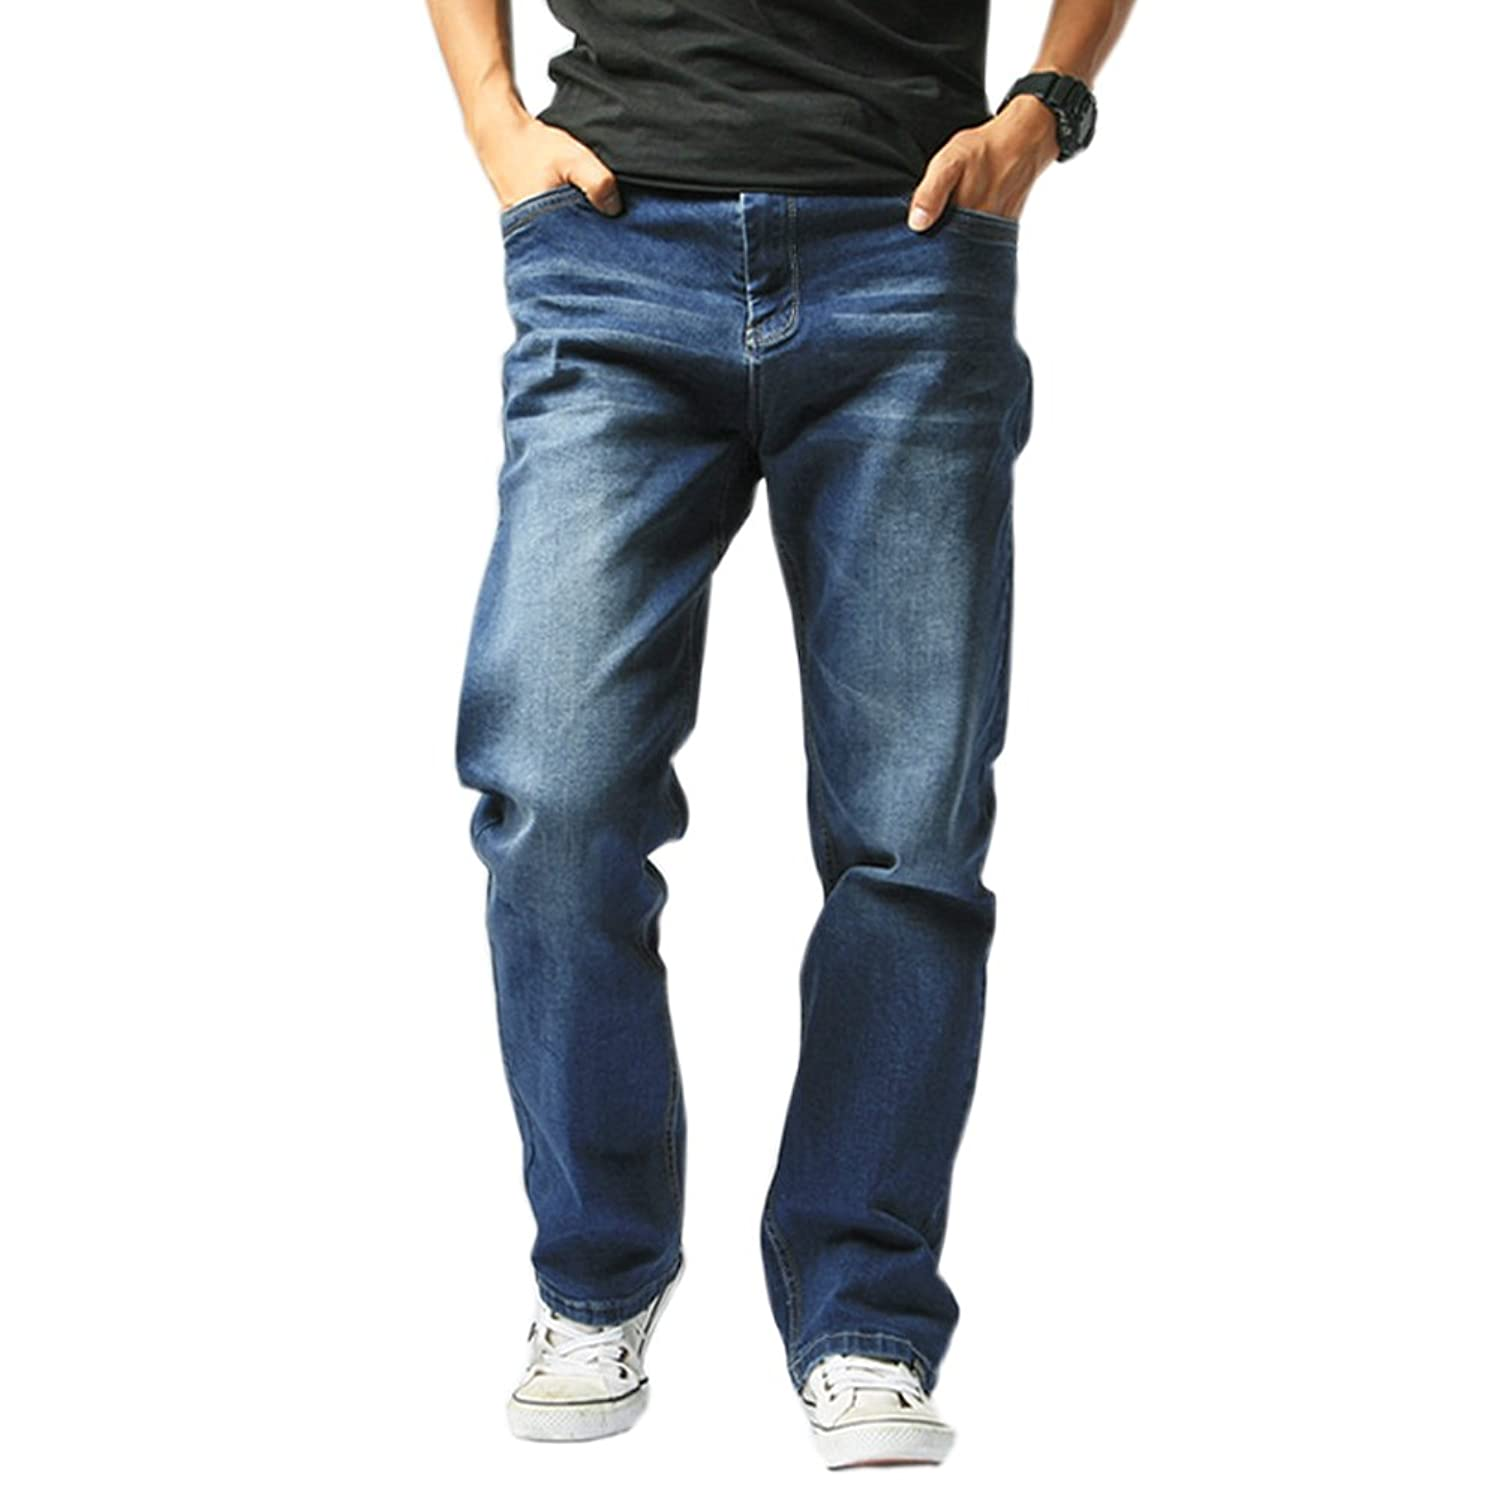 LIYT Men's Loose Jeans